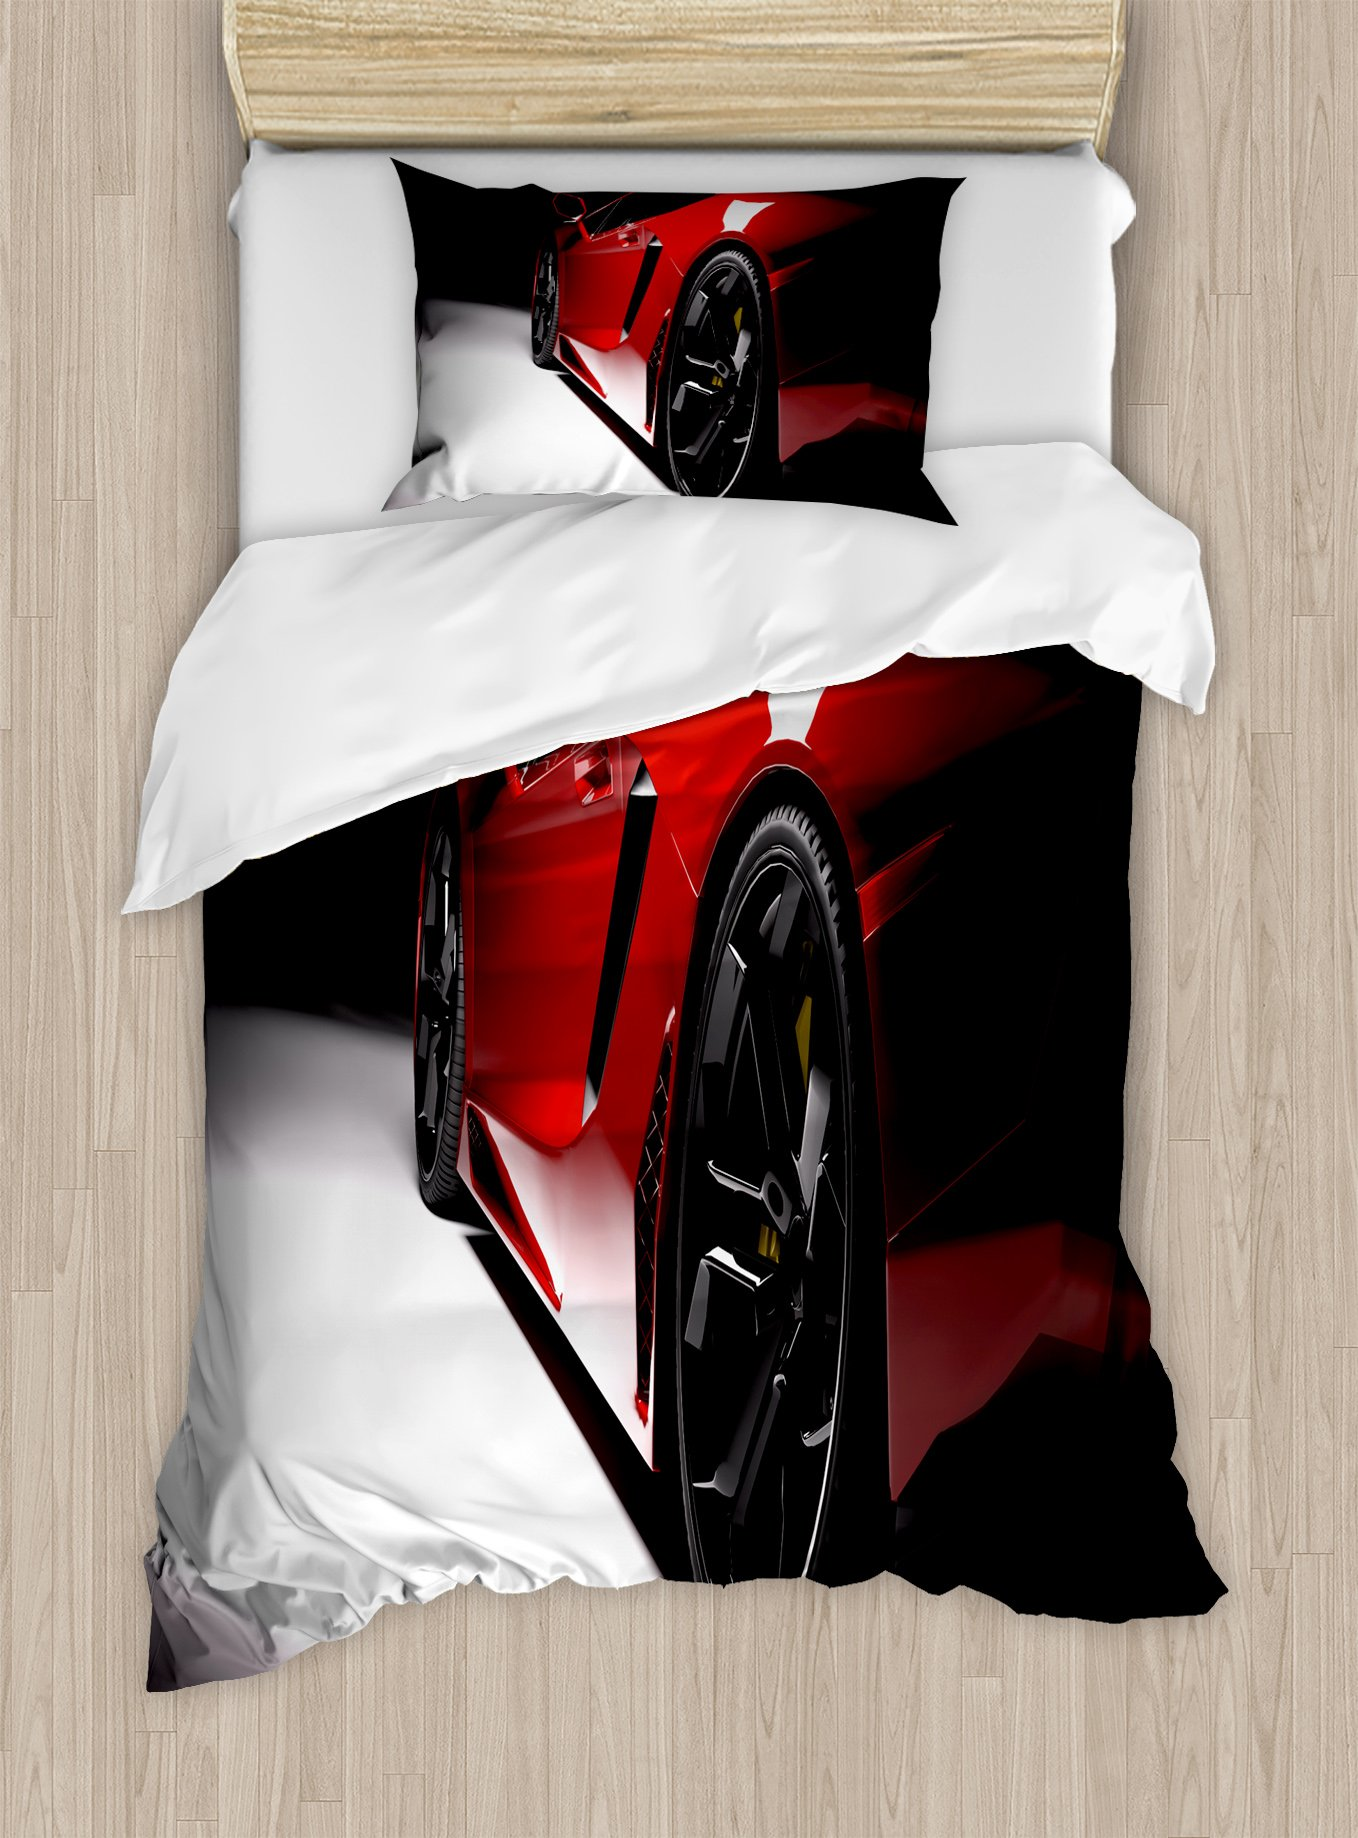 Lunarable Boy's Room Duvet Cover Set Twin Size, Modern Speed Sport Car Fancy Vivid Toned Exquisite Stylized Automobile Image, Decorative 2 Piece Bedding Set with 1 Pillow Sham, Red Black